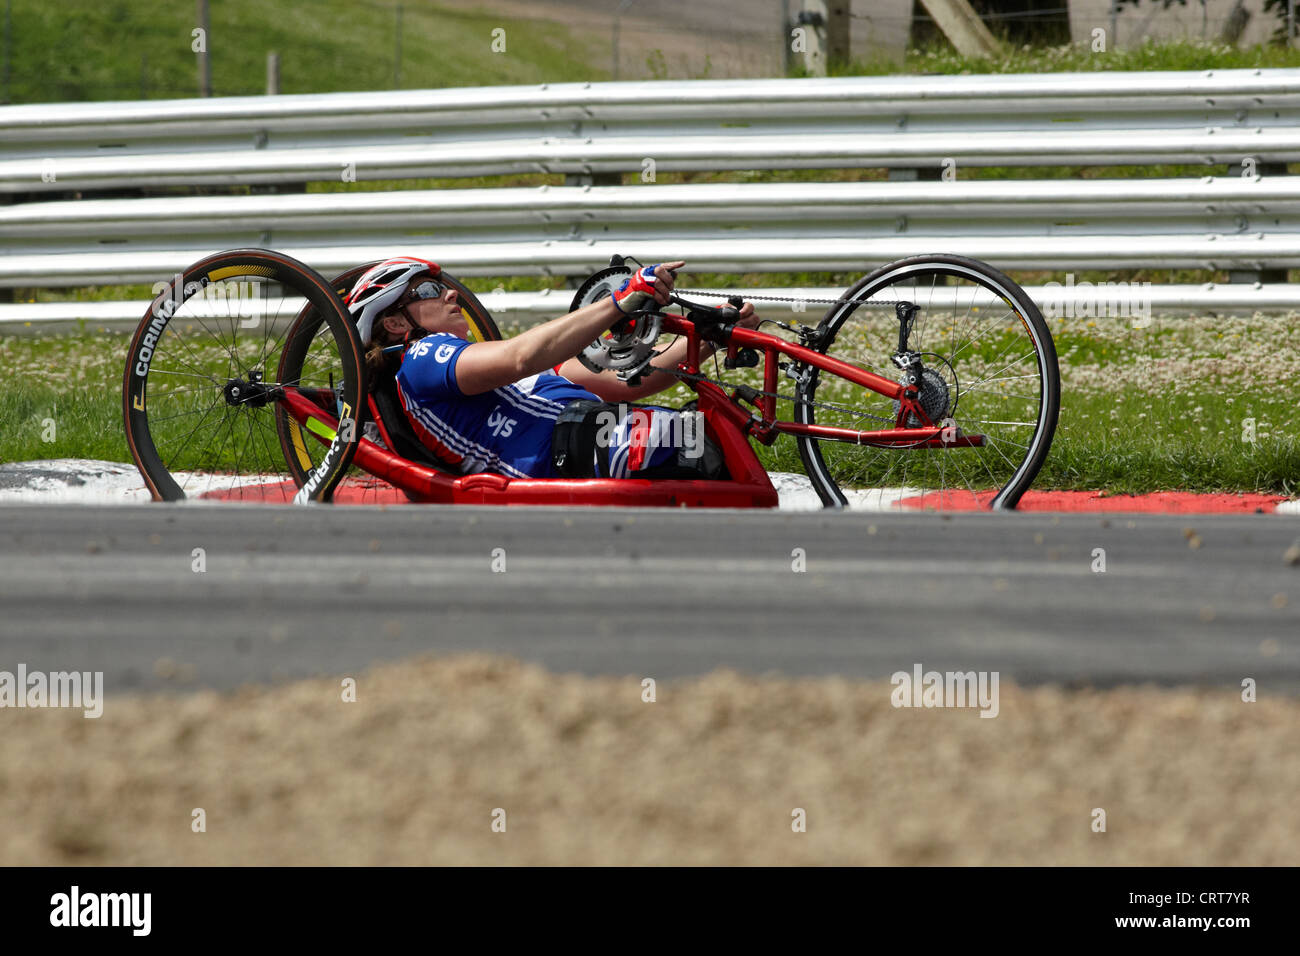 Para cyclist training for the London Paralympics at Brands Hatch, June 2012. - Stock Image